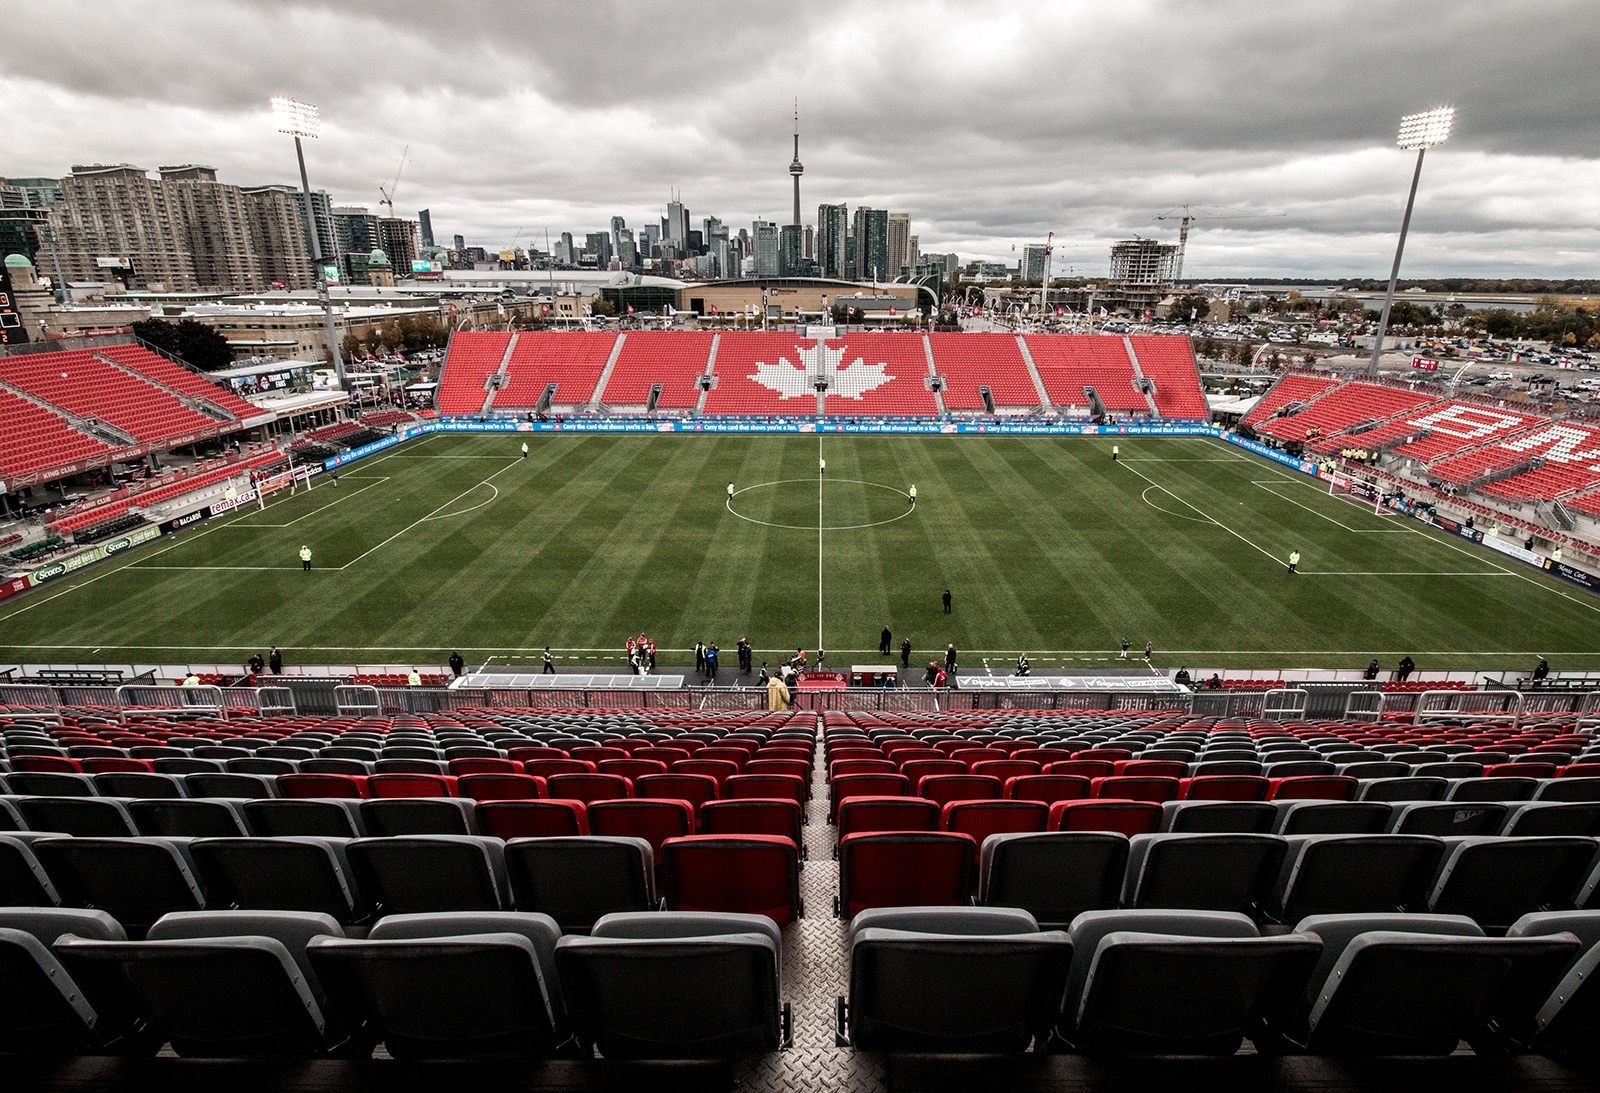 View of BMO Field in Fall of 2014 with a beautiful Toronto Skyline in the background. Image by Dennis Marciniak of denMAR Media.